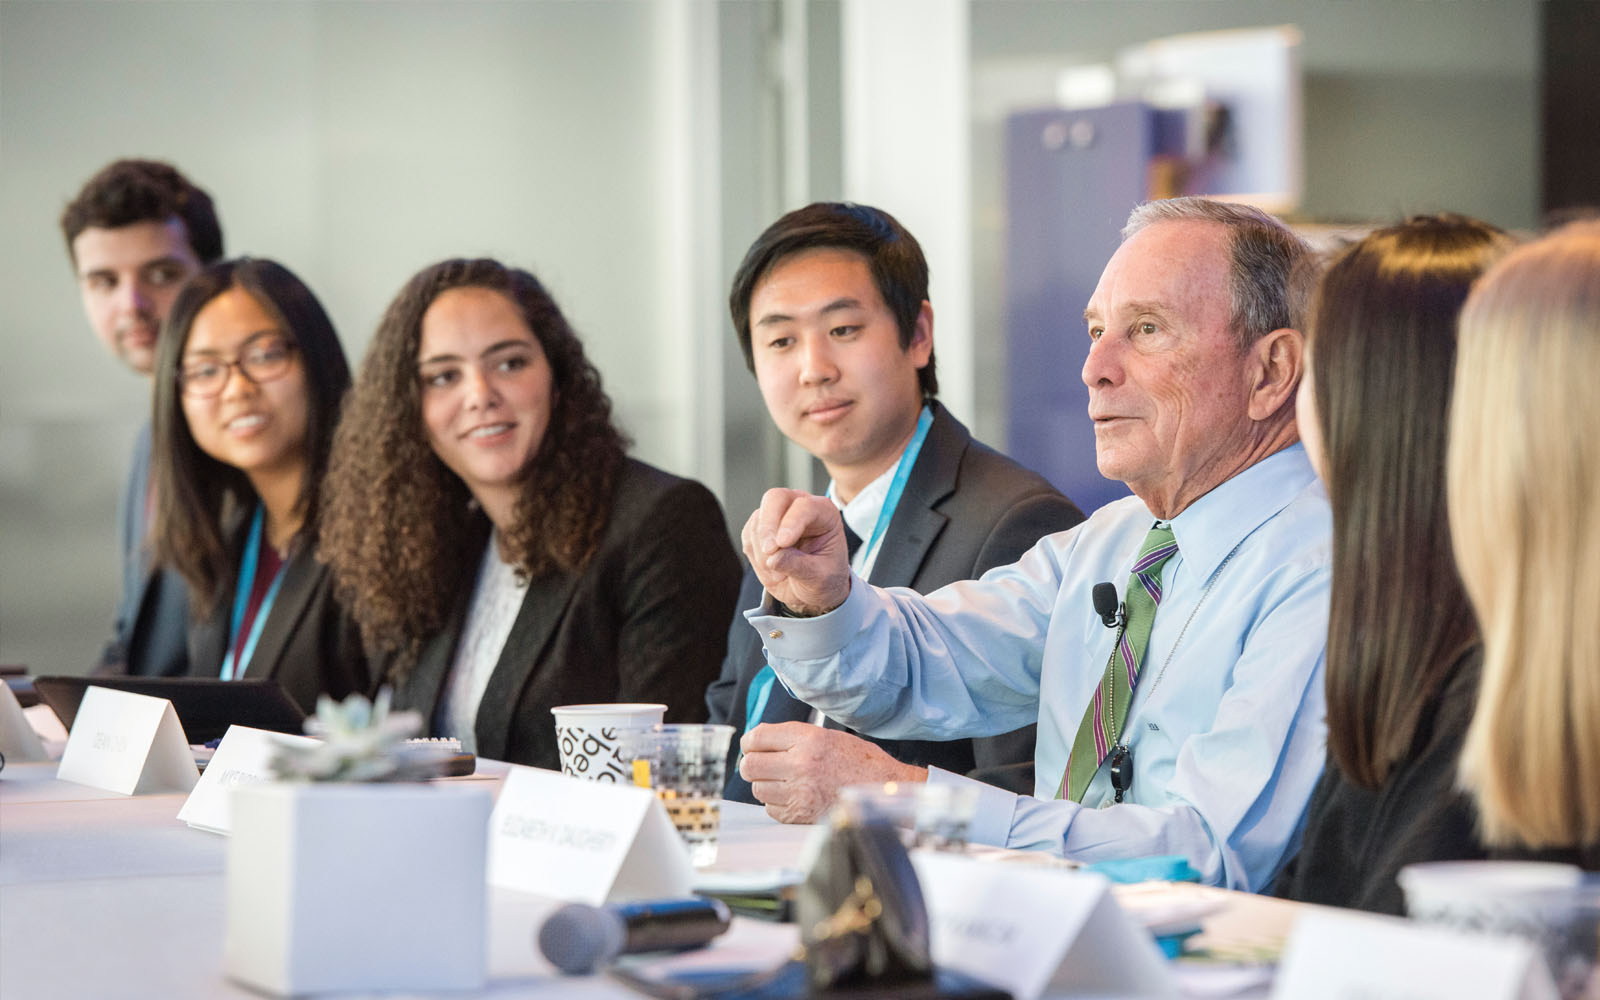 Mike Bloomberg hosts Johns Hopkins Bloomberg Scholars at the Bloomberg L.P. headquarters in New York City.